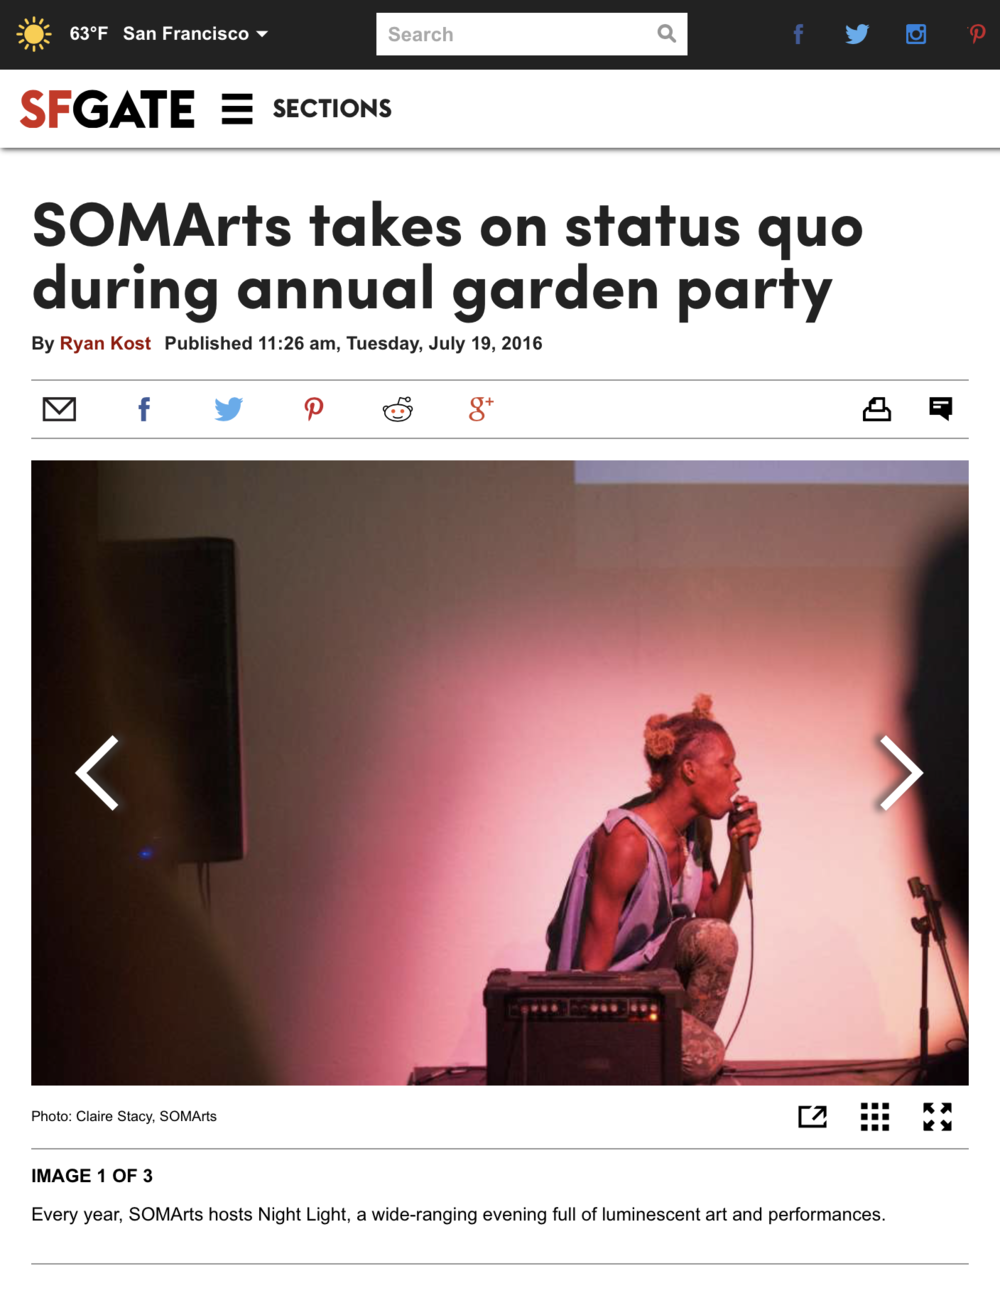 "Kost, Ryan. ""SOMArts Takes on Status Quo during Annual Garden Party."" SFGate. N.p., 19 July 2016. Web. 22 July 2016."